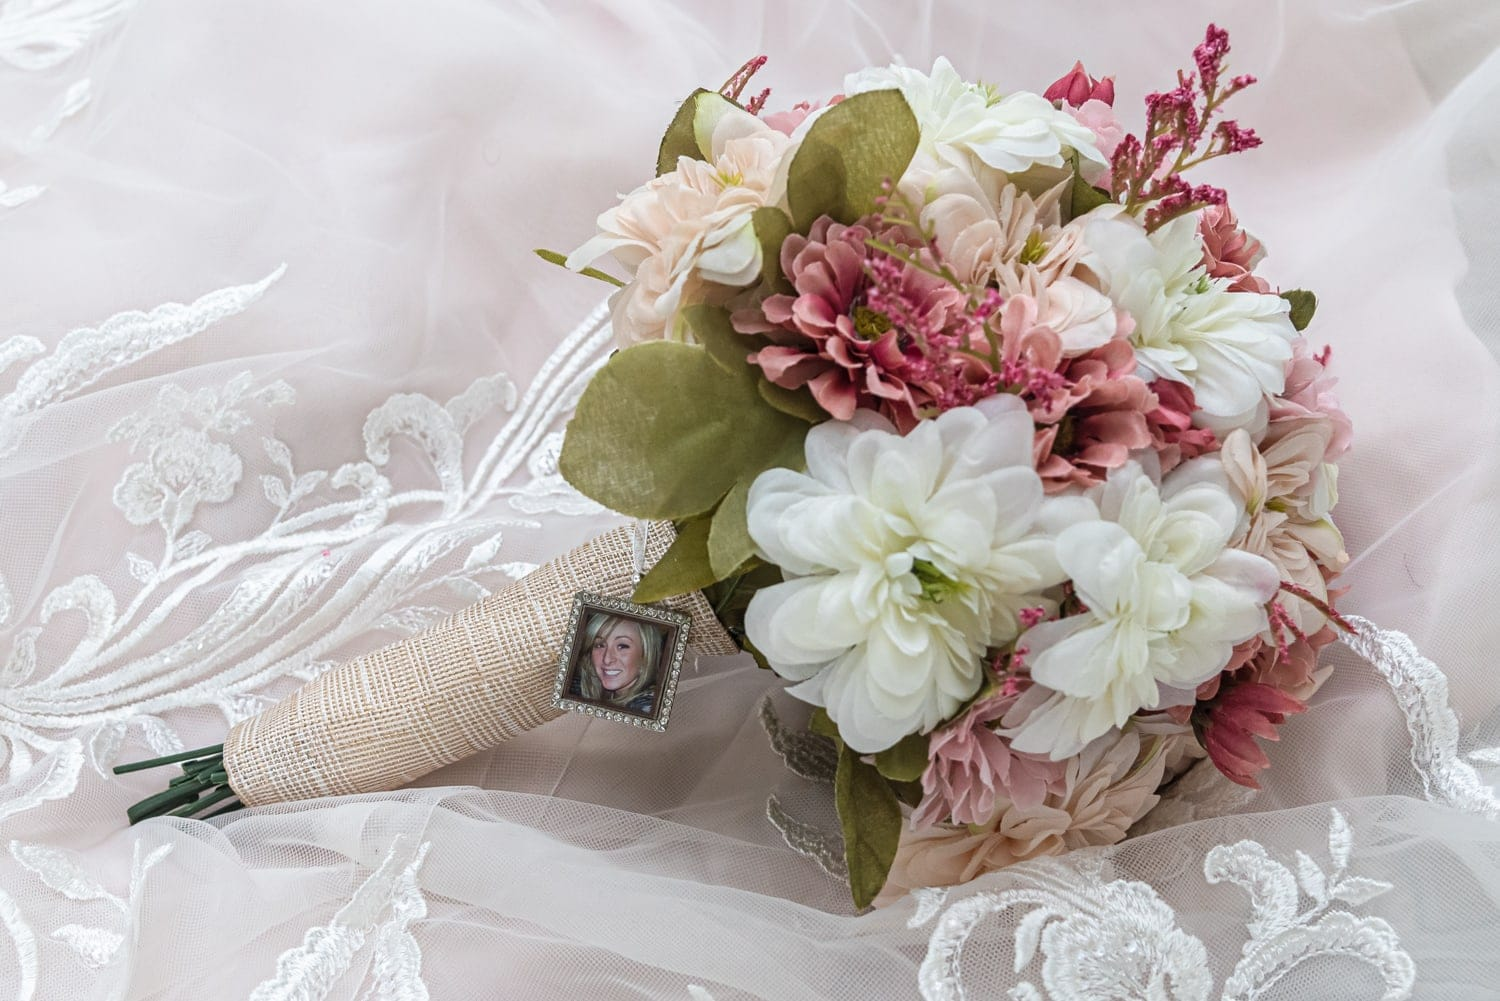 A silk flower arrangement of white, pink and green in a wedding bridal bouquet.